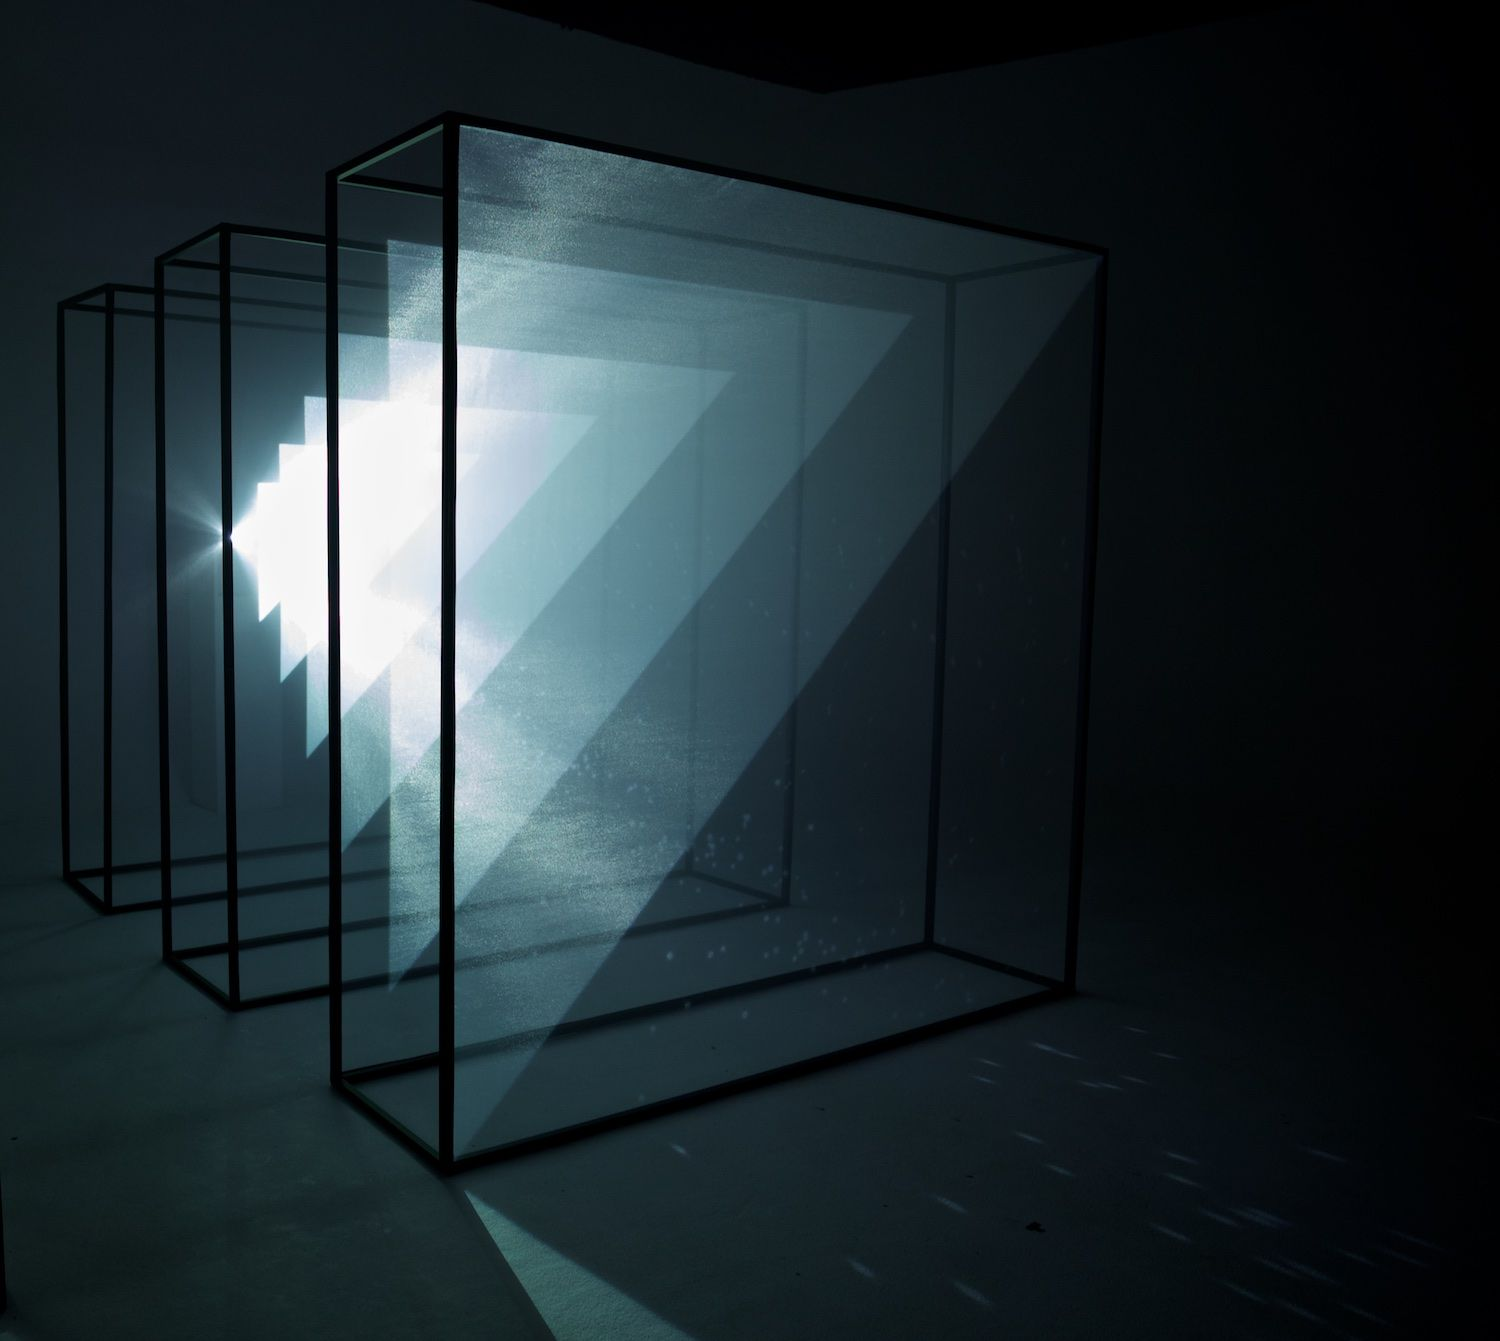 A Inspire Pinterest Projection Mapping Light Art - Projection mapping turns chapel into stunning work of contemporary art